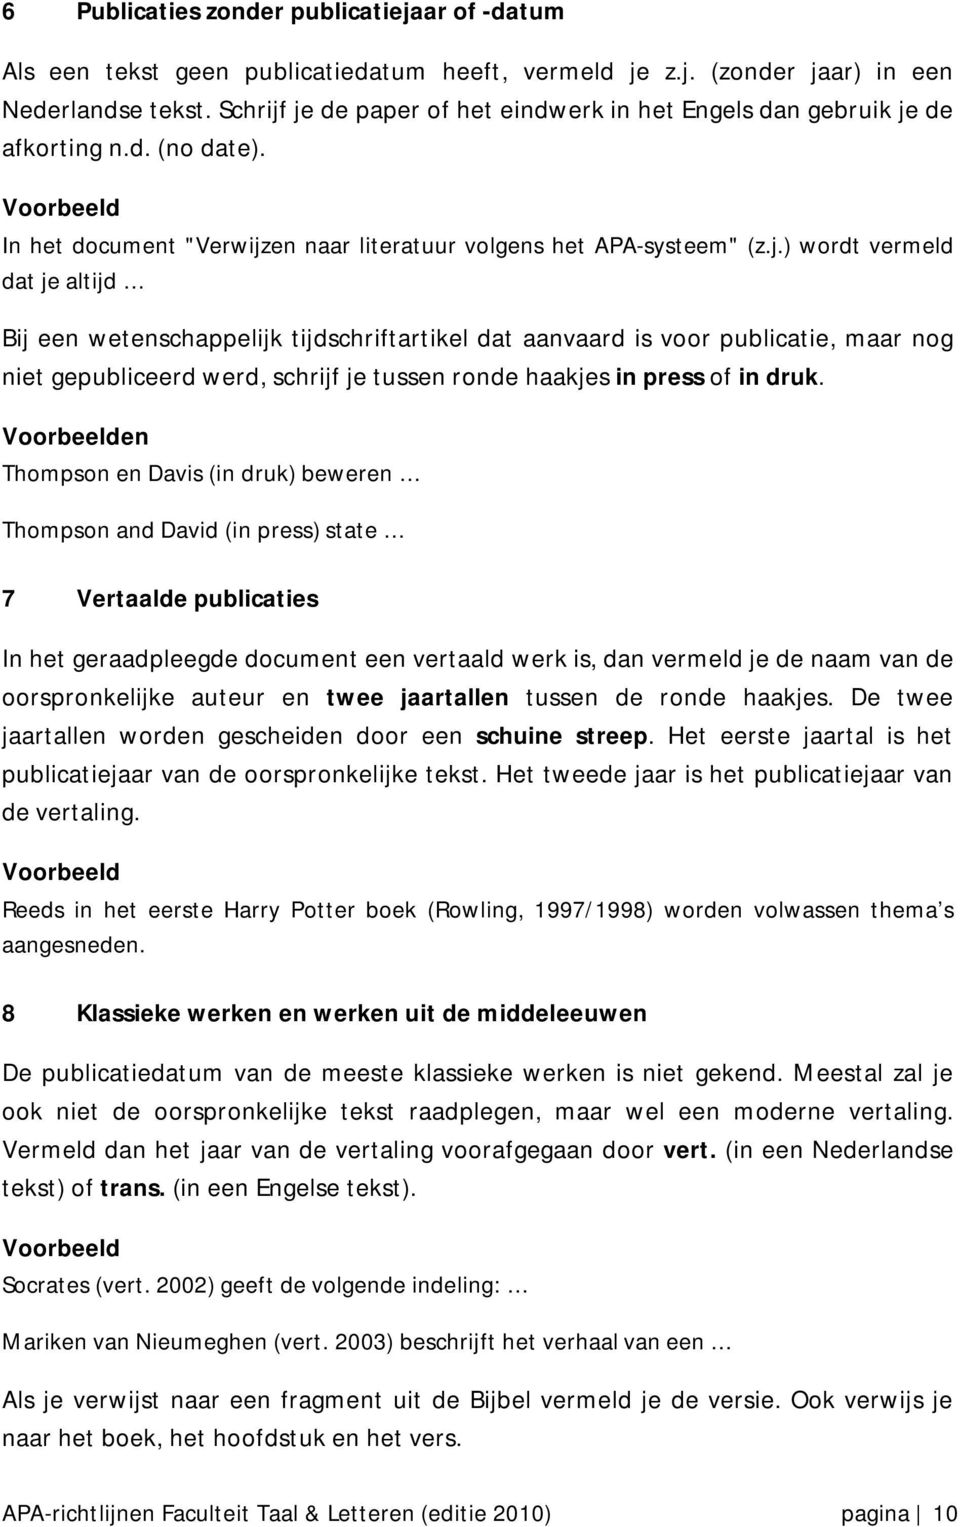 en Thompson en Davis (in druk) beweren Thompson and David (in press) state 7 Vertaalde publicaties In het geraadpleegde document een vertaald werk is, dan vermeld je de naam van de oorspronkelijke